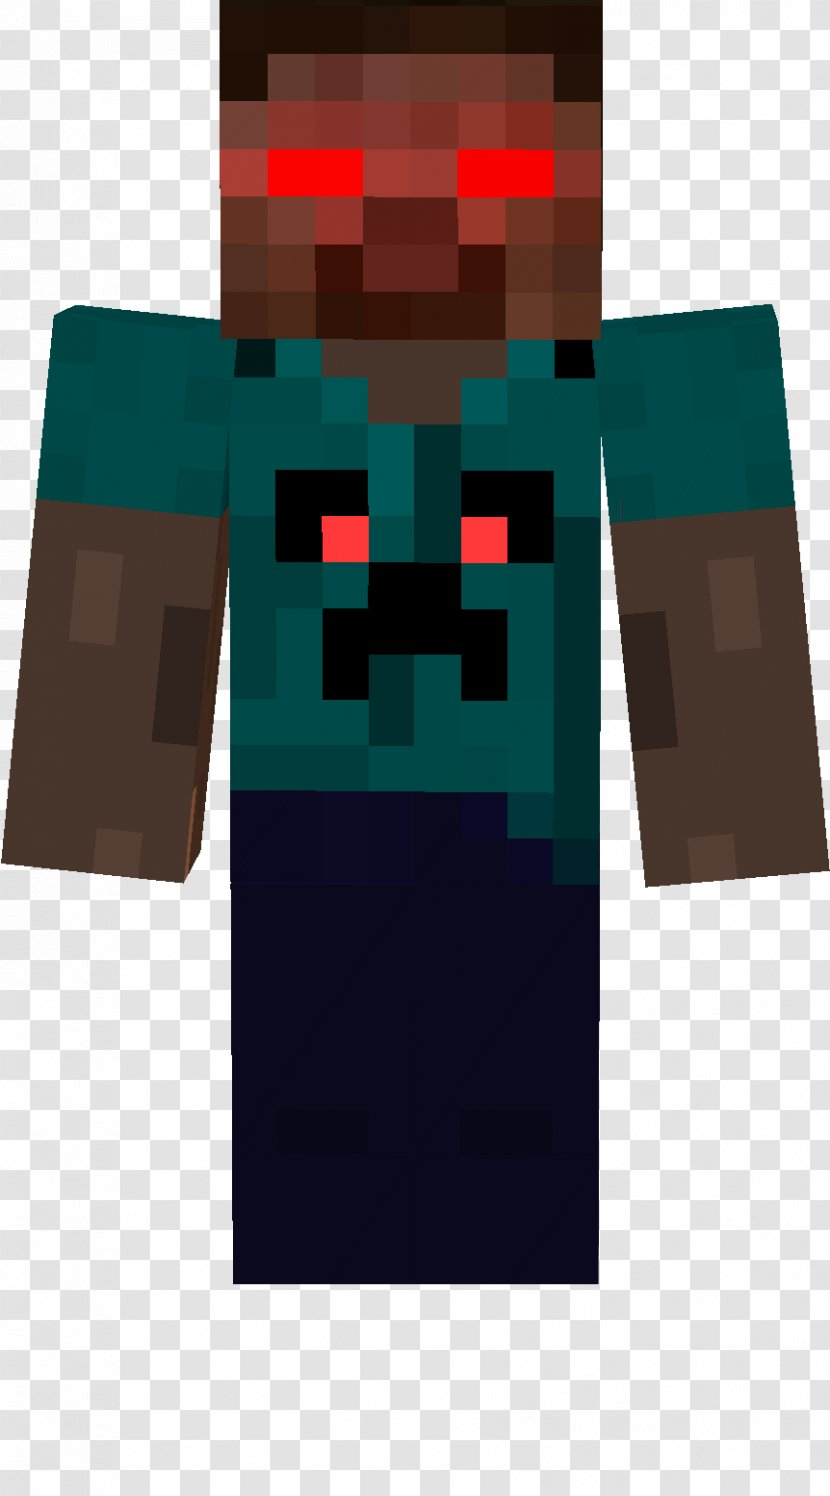 minecraft pocket edition roblox xbox 360 video game cape Minecraft Pocket Edition Roblox Herobrine Skin Enderman Transparent Png